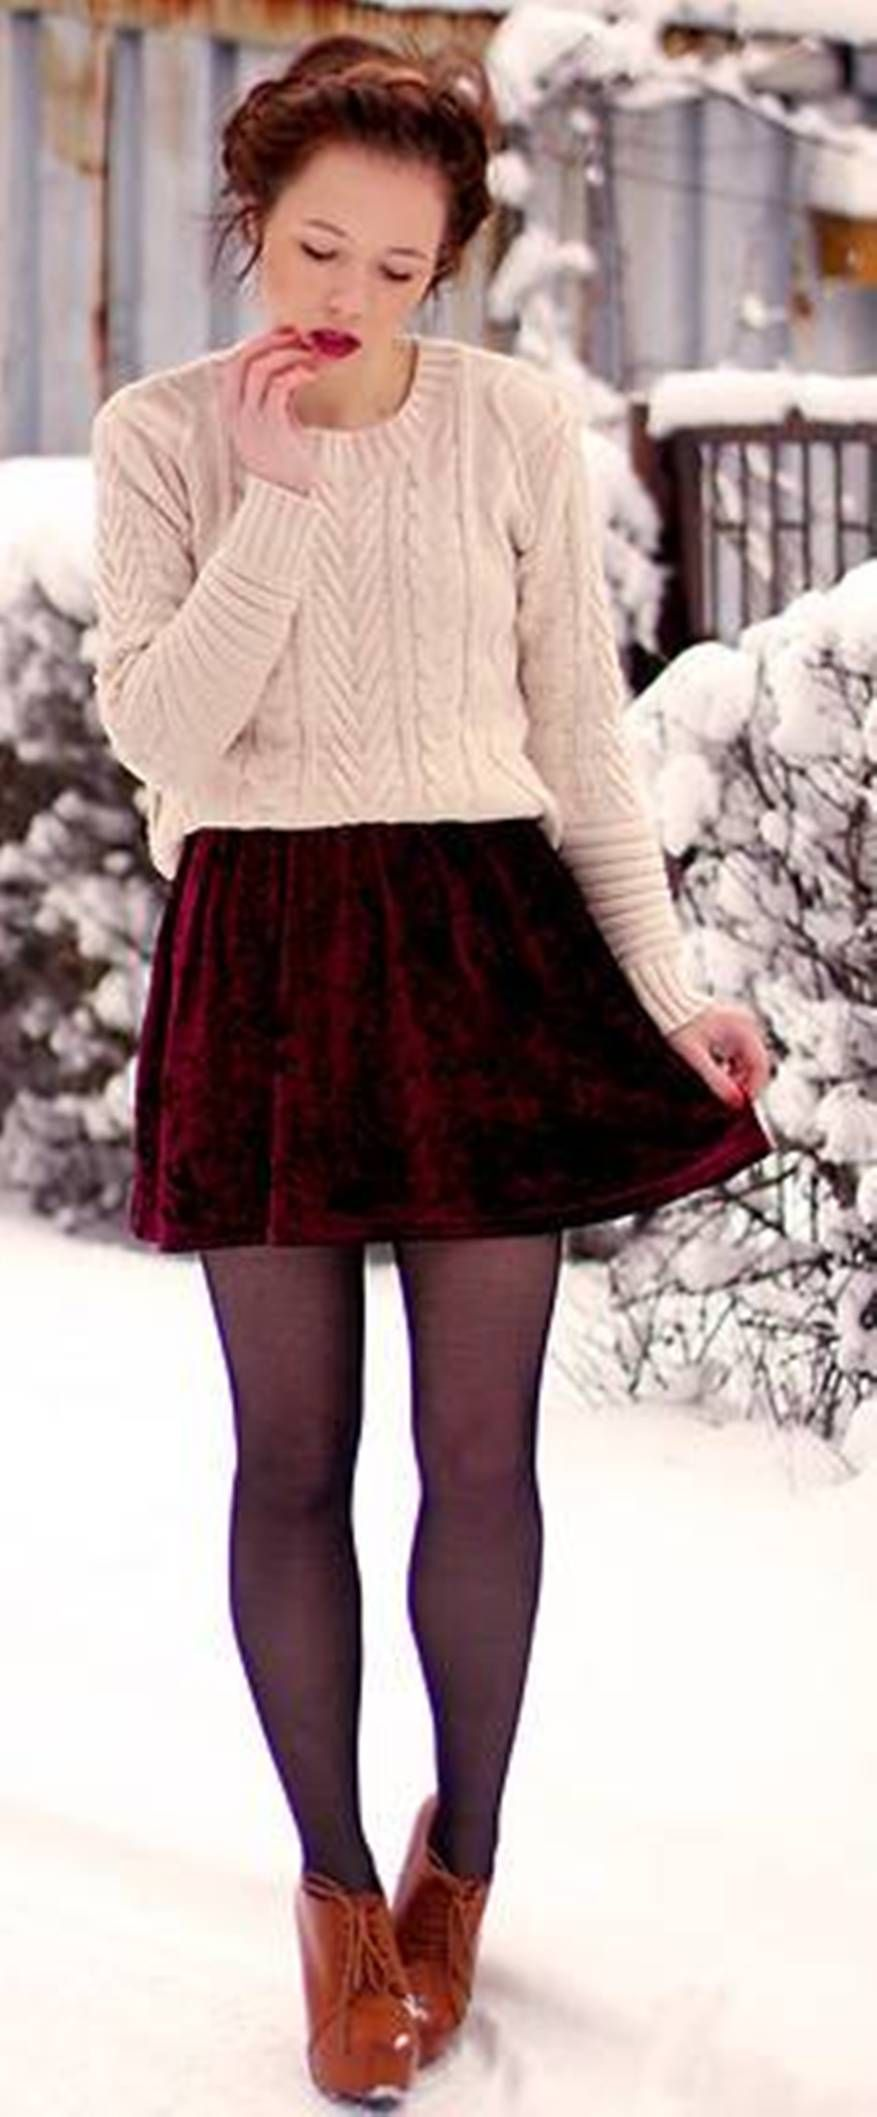 Cute idea how to wear a dresses in winter | Fashion | Pinterest | Winter Clothes and Clothing